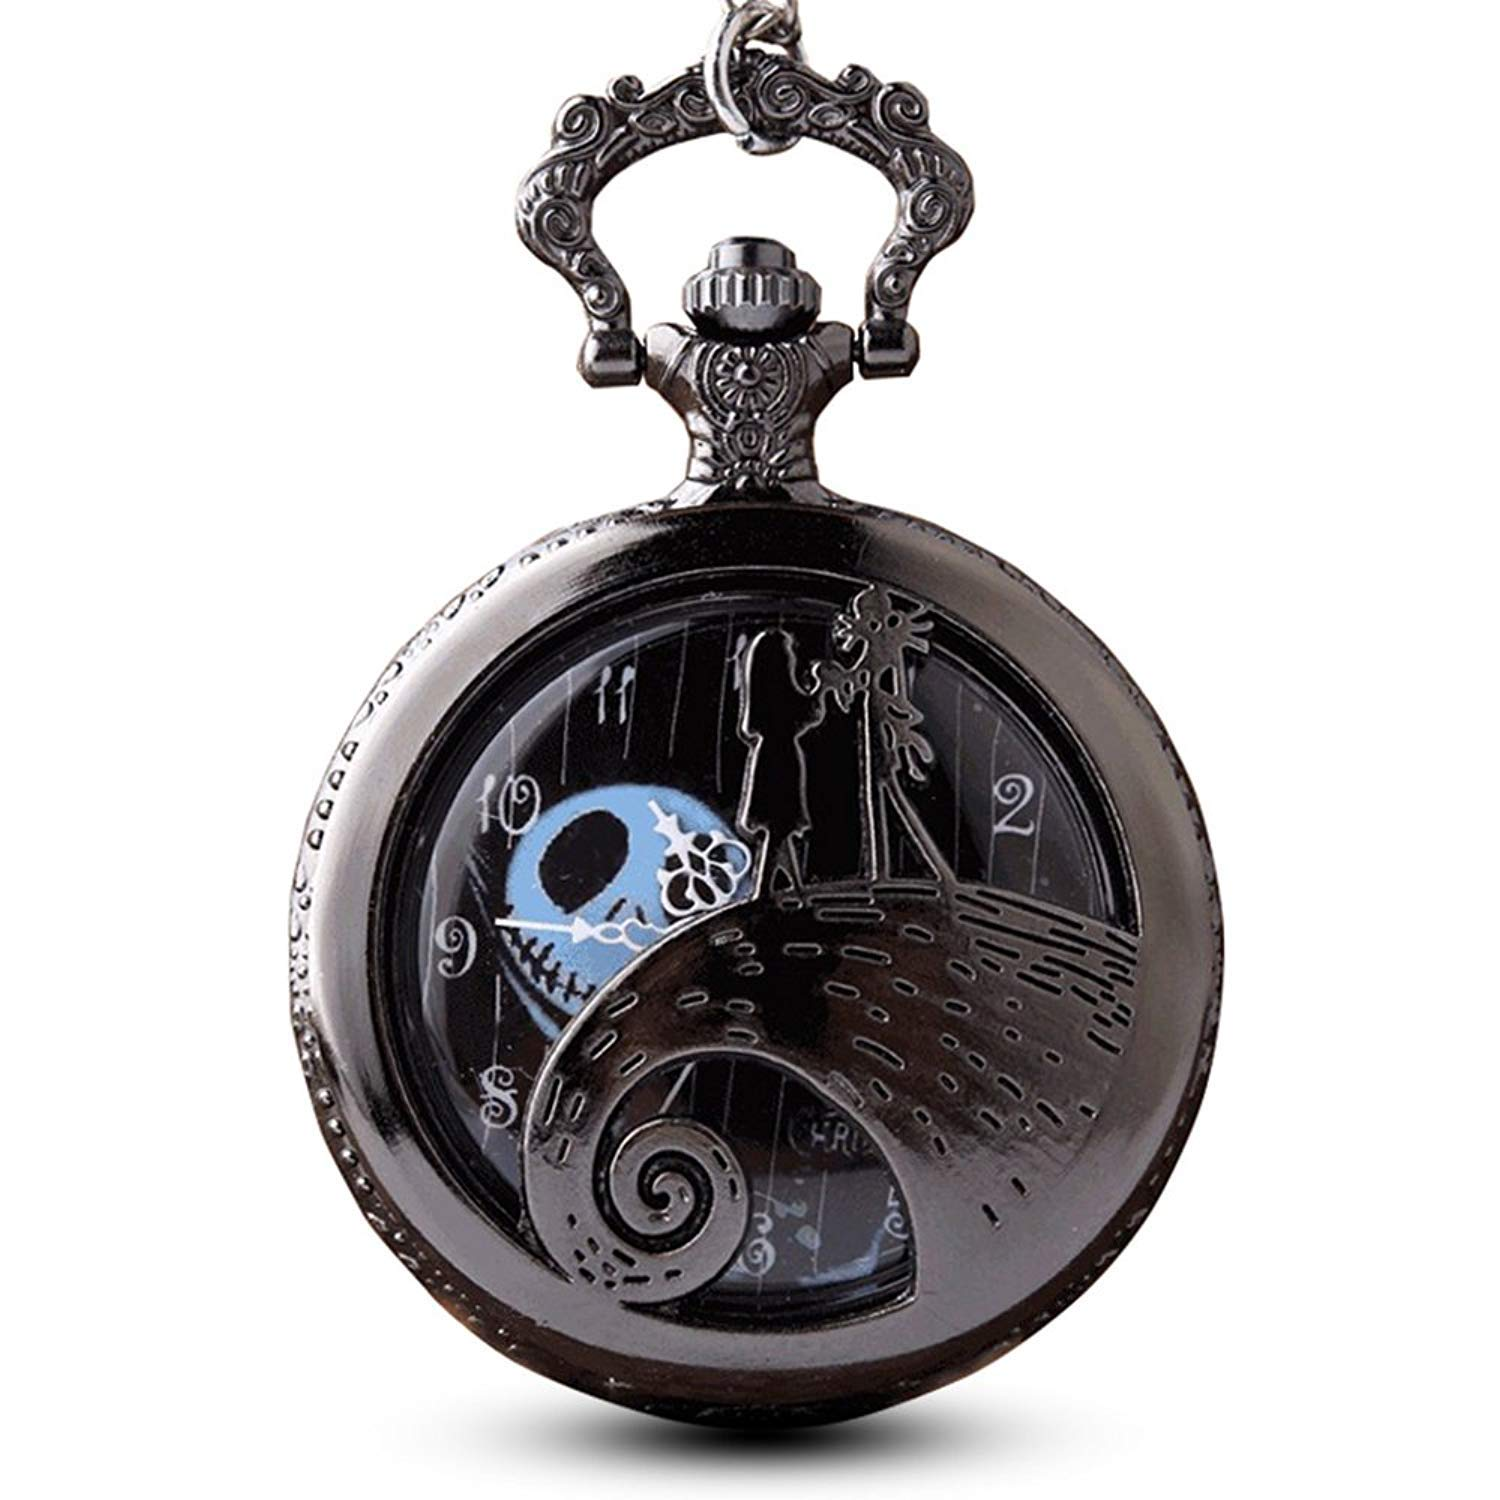 GORBEN Antique Nightmare Before Christmas Pocket Watch Hollow Quartz Steampunk Pocket Watches Necklace Chain for Fans